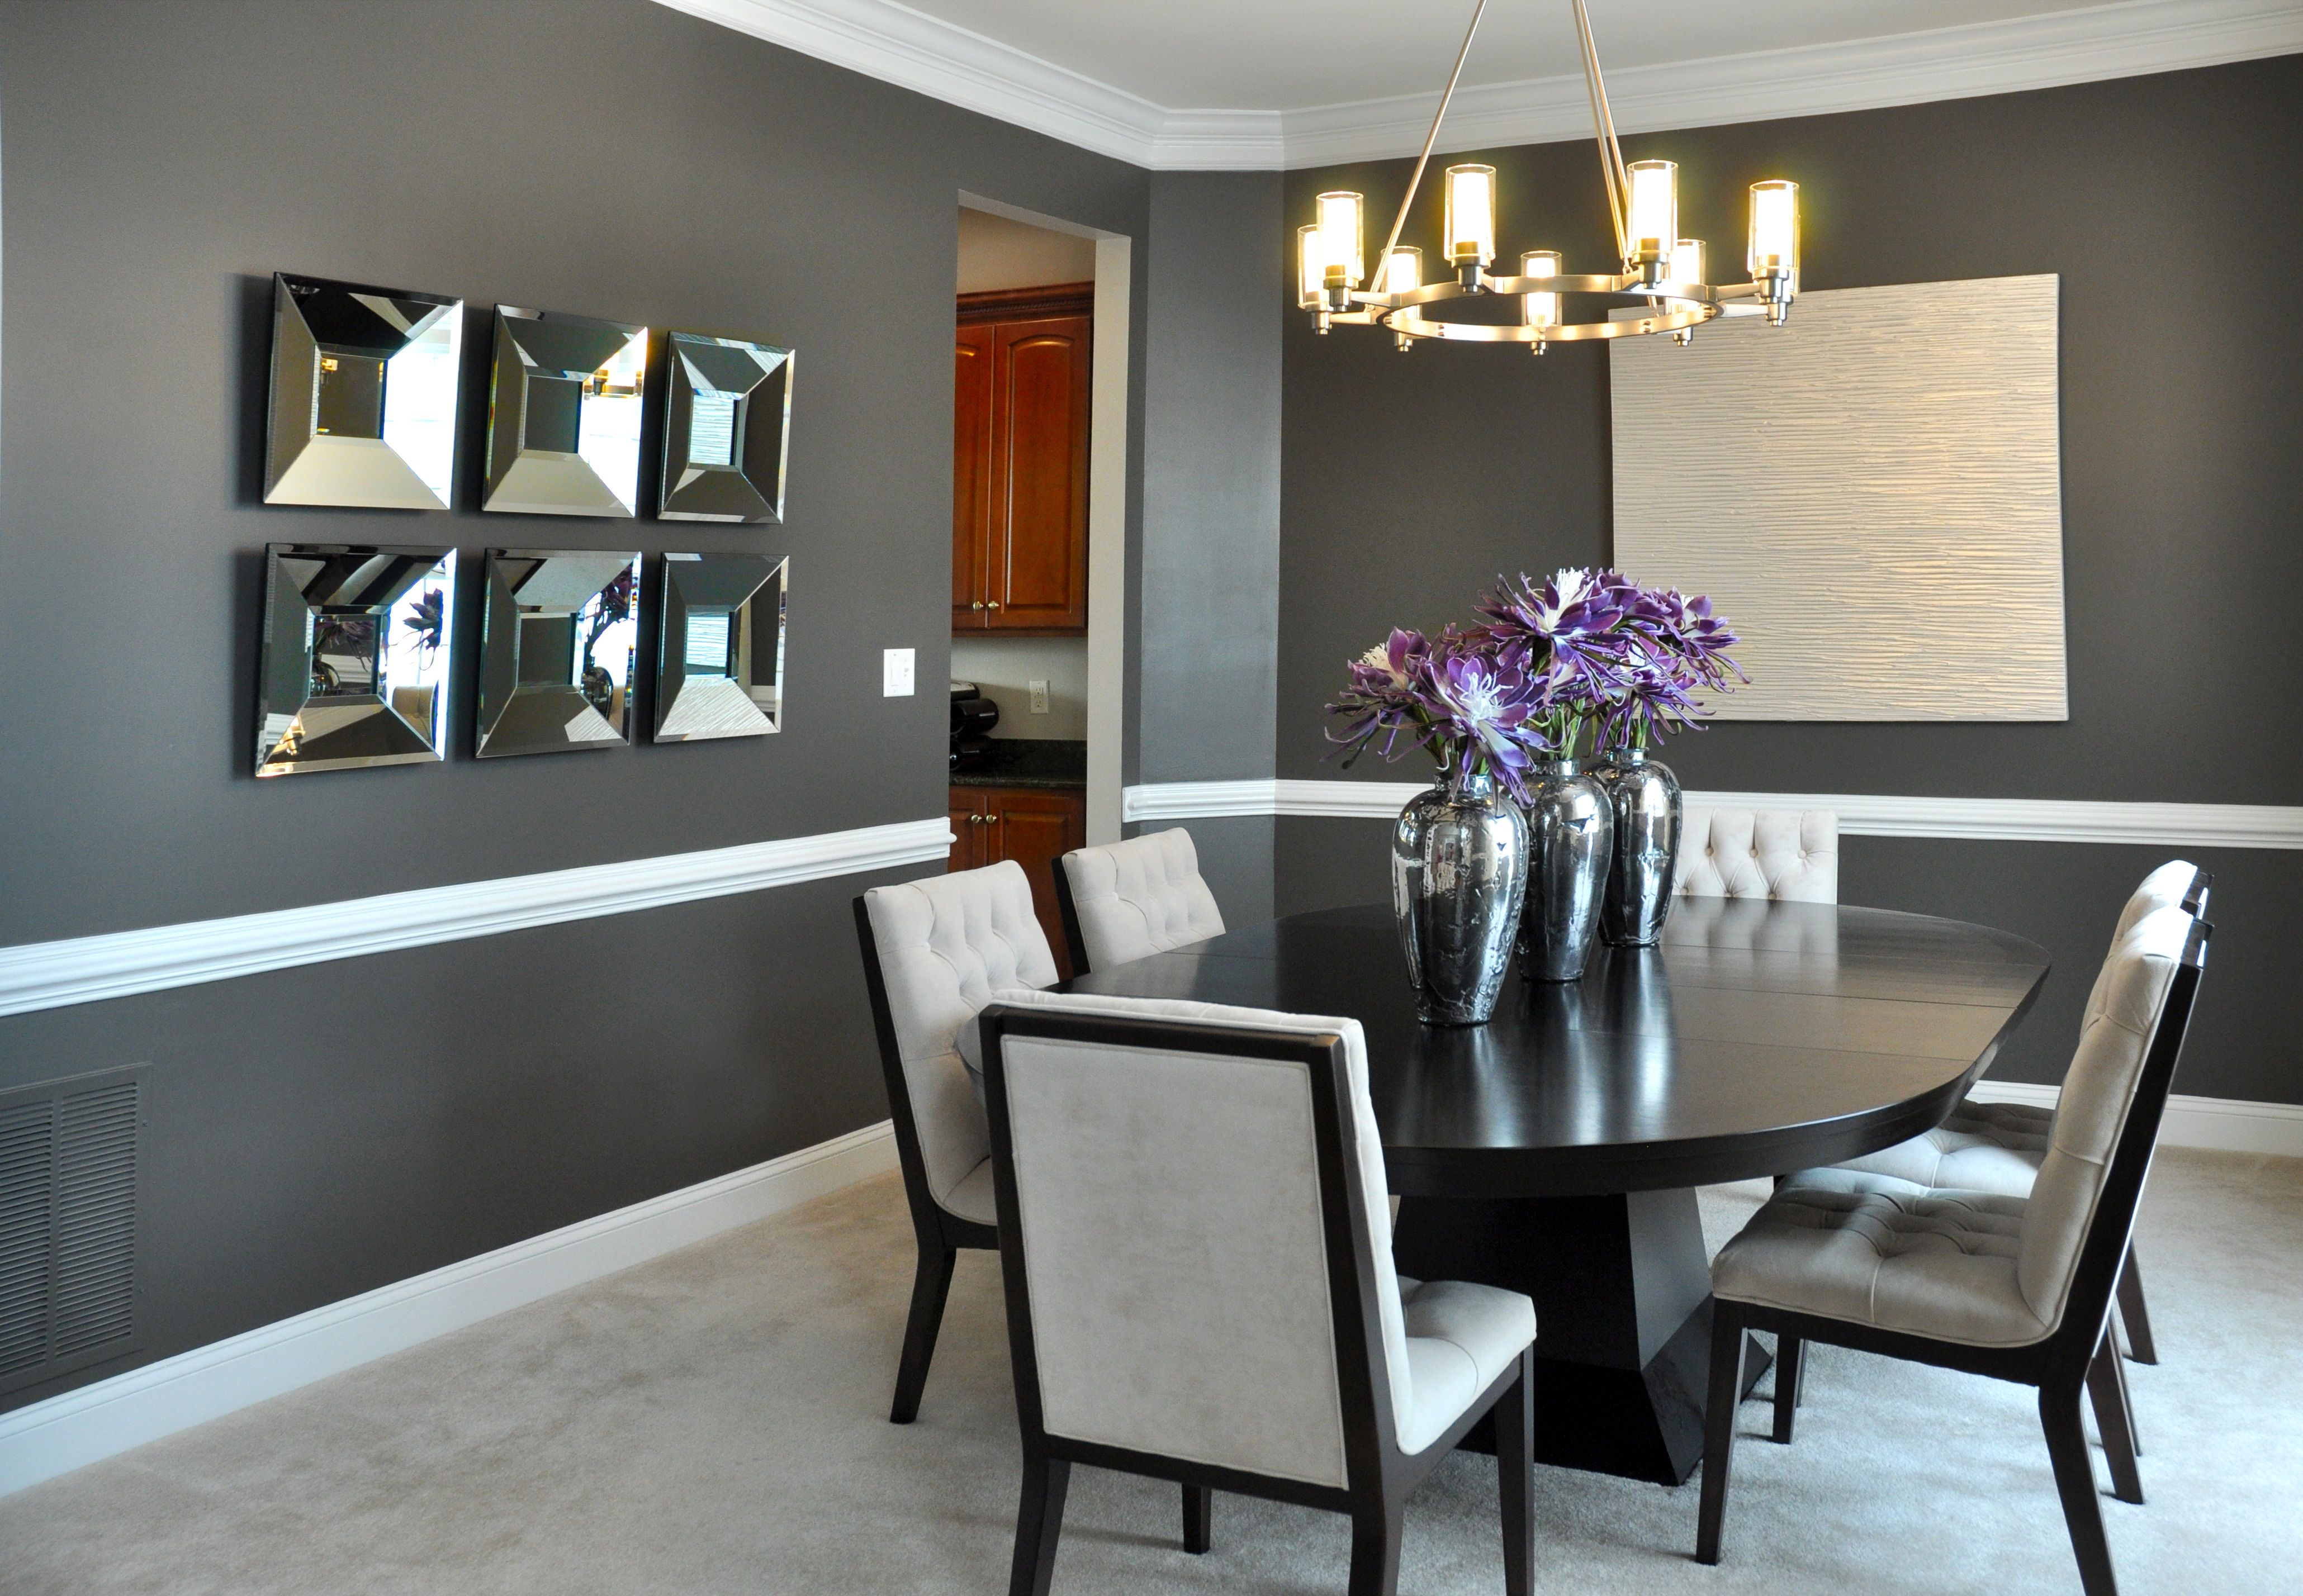 2013 Edgy Dining Room Design Contemporary Dining Room Design Unique Dining Room Dining Room Colors